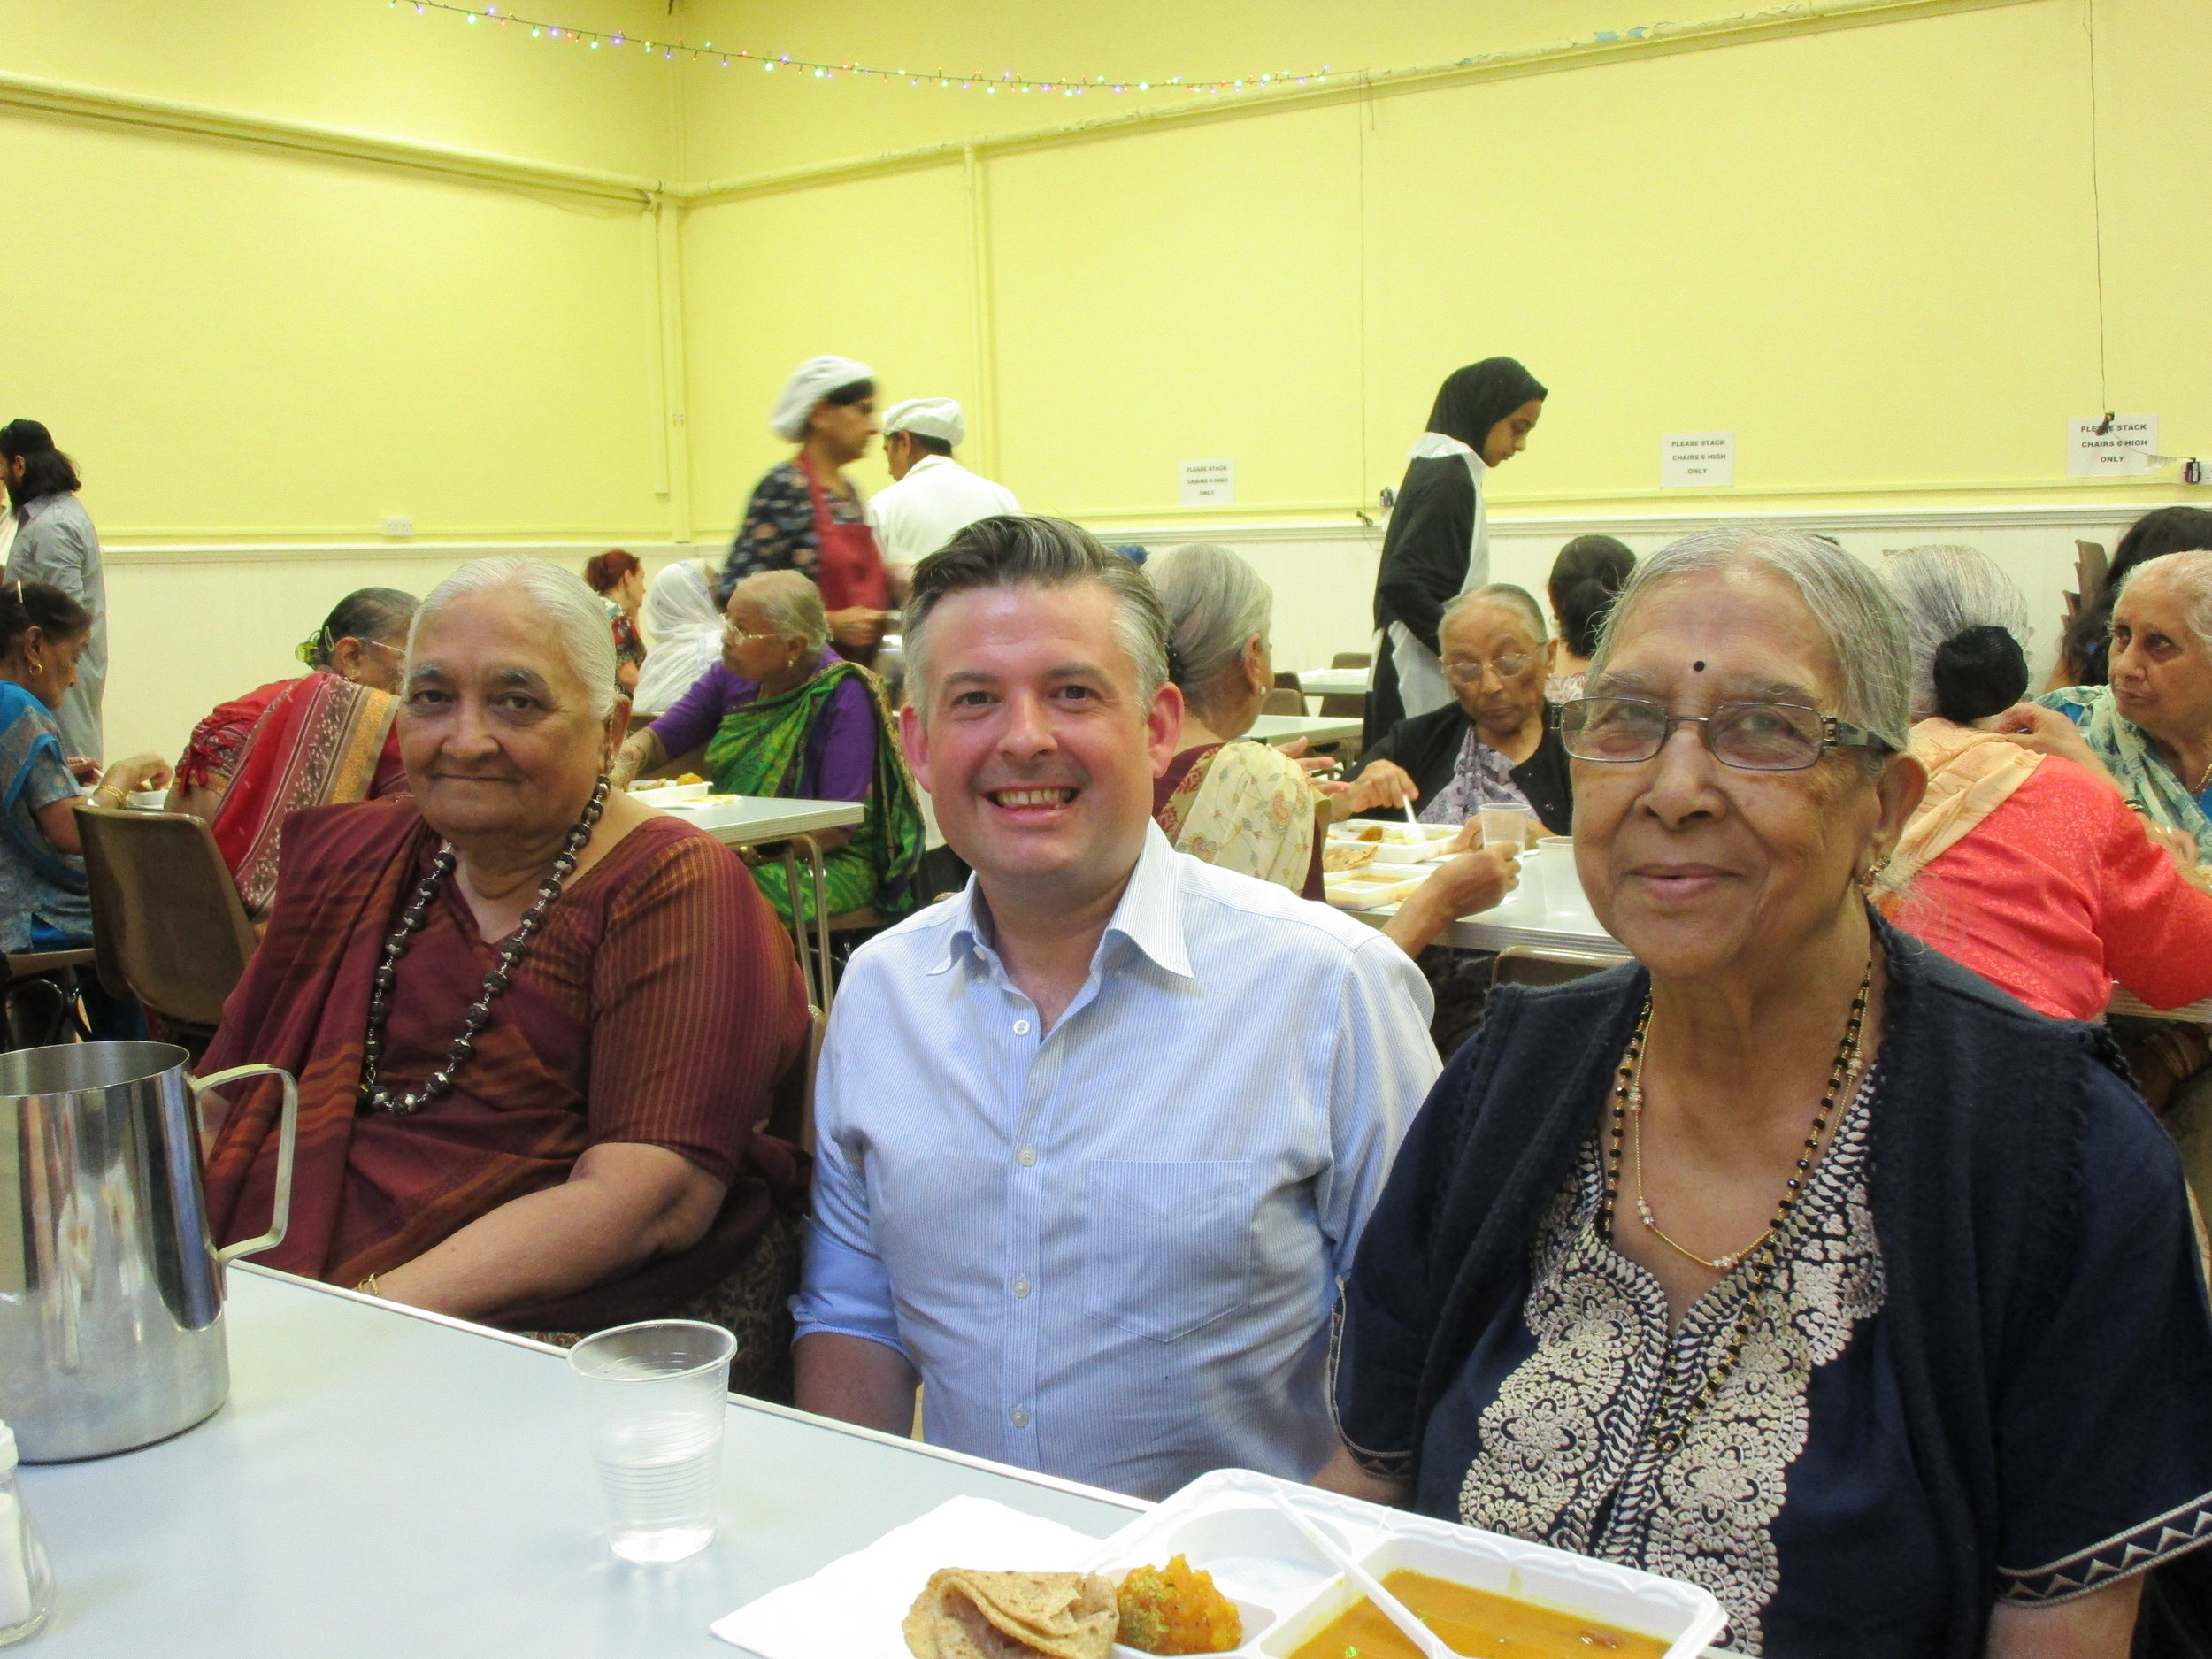 Jon Ashworth, Labour MP for Leicester South, visits Wesley Hall Elders Lunch Club and meets old friends and makes new ones - Fiday 27 july 2018